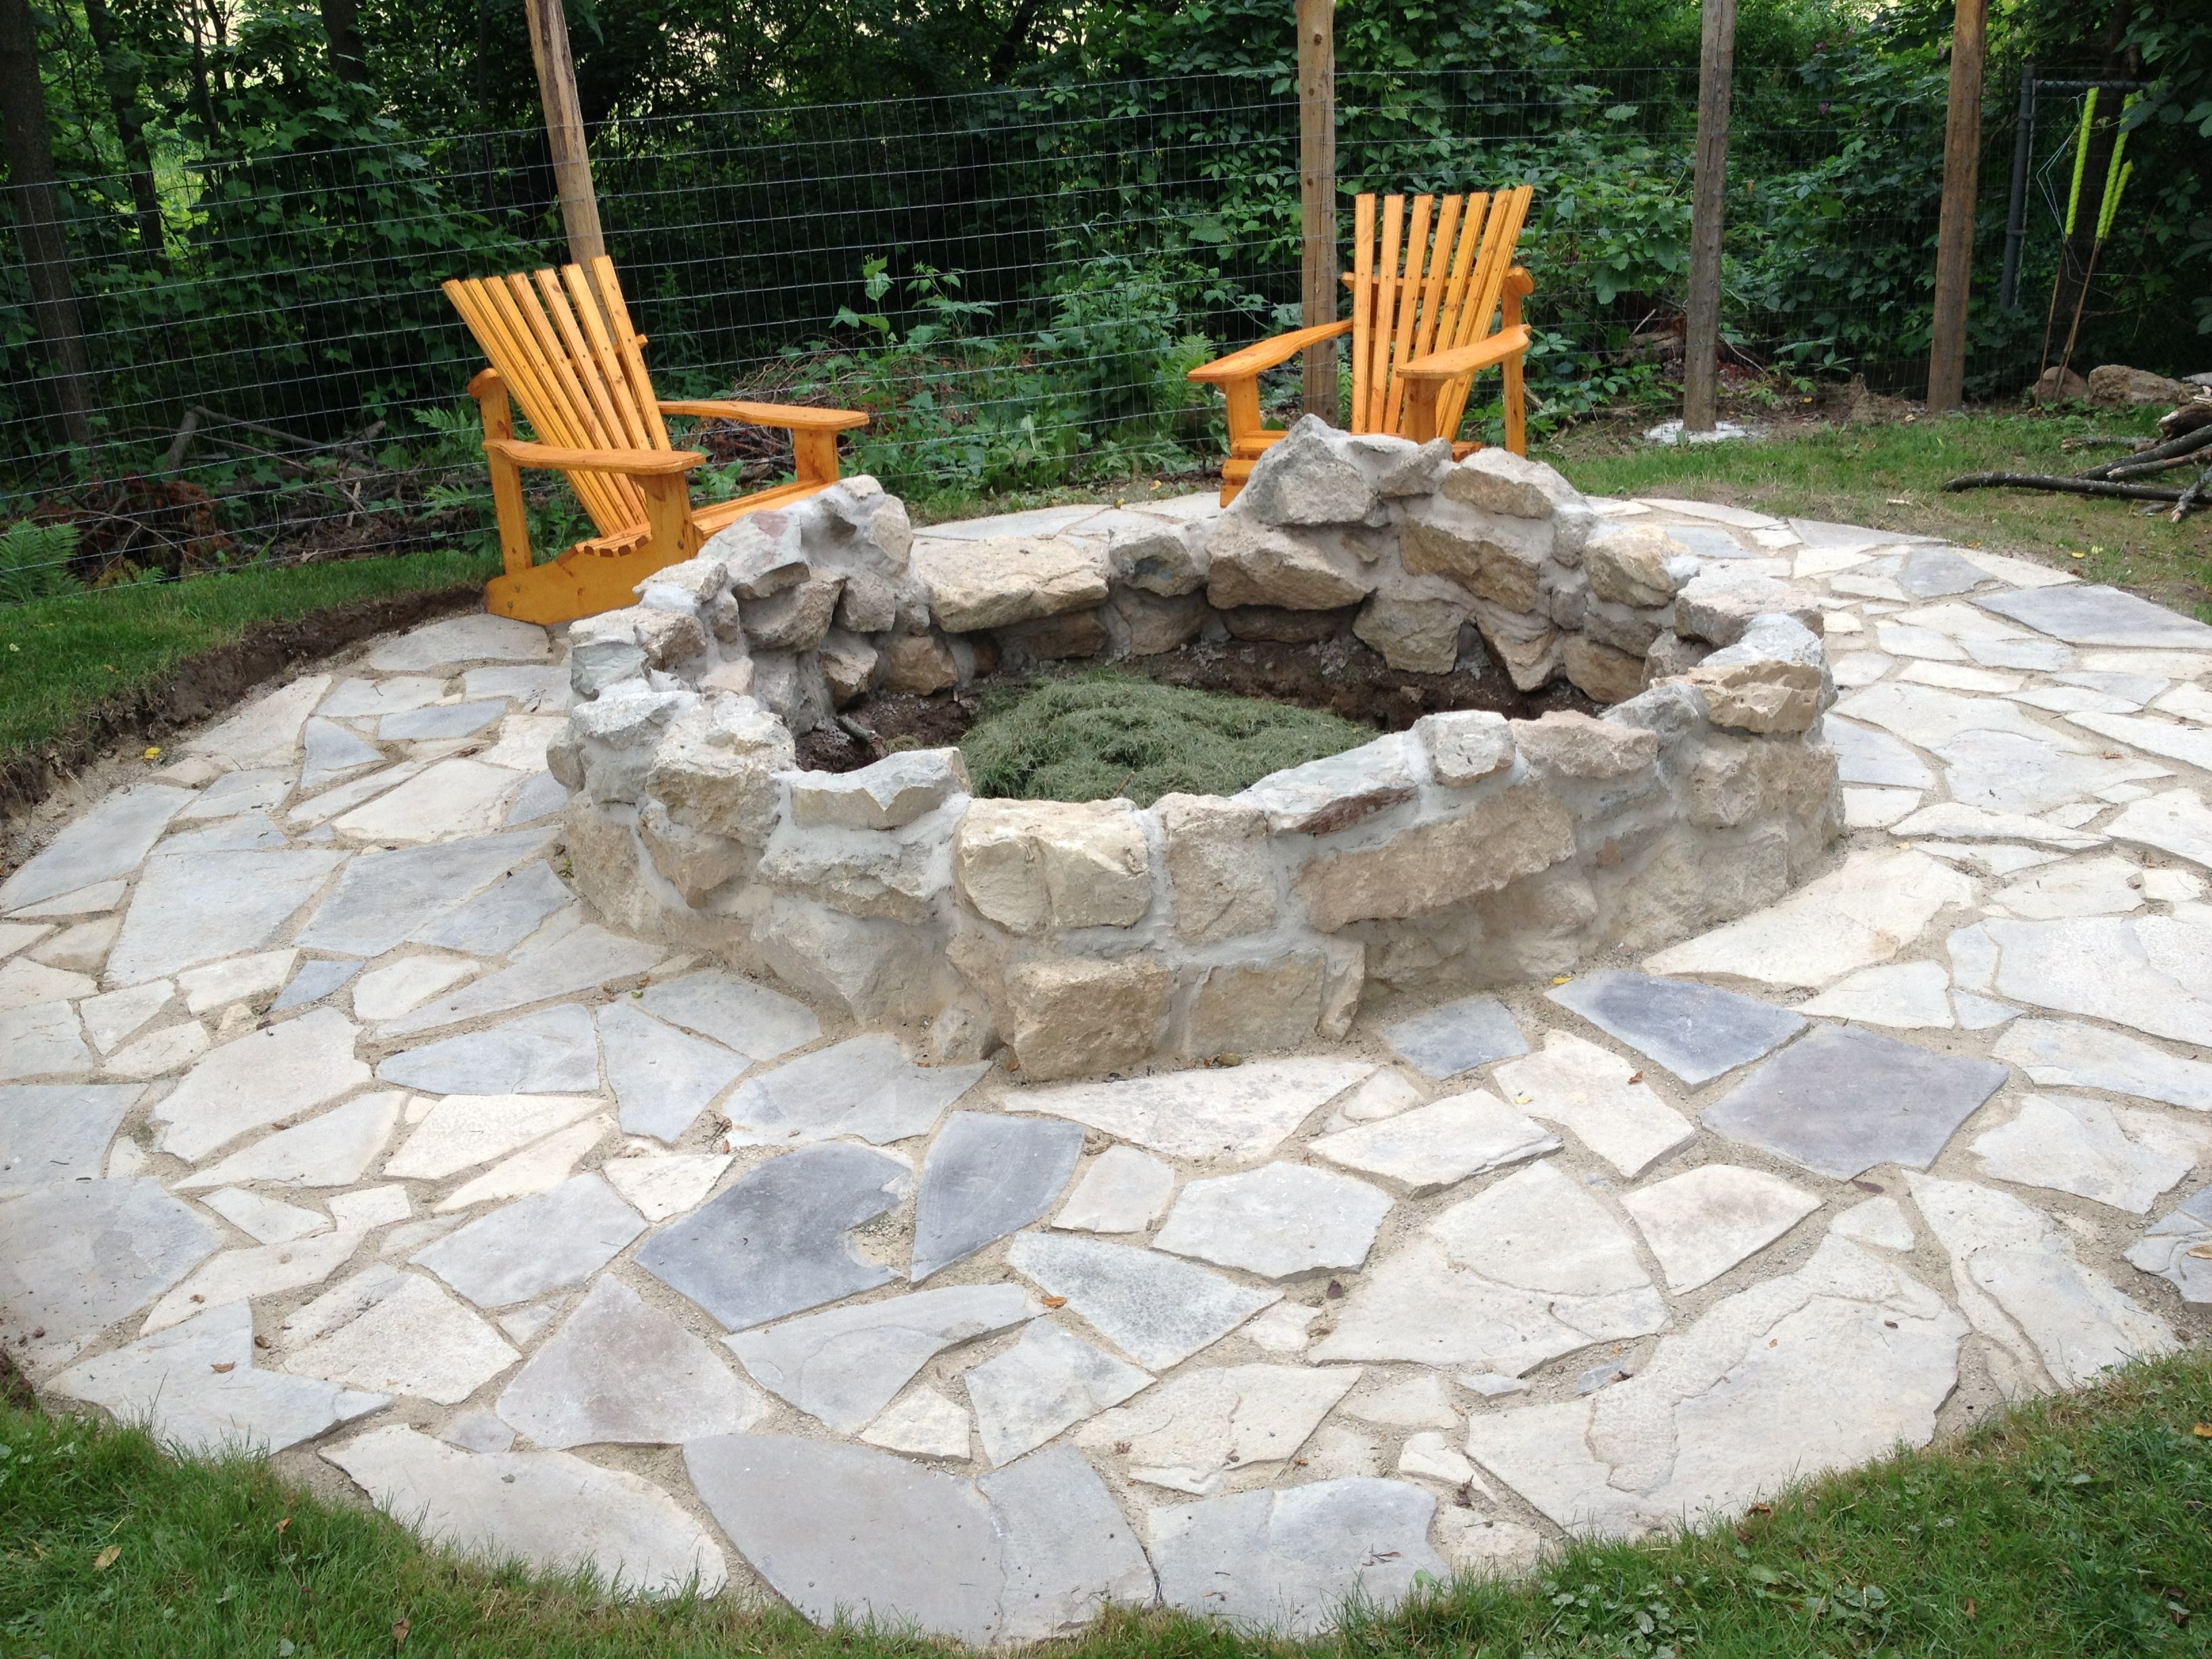 1aa4f6fbeee268d4fbe2294d3d622ff3 Top Result 50 Fresh Cool Fire Pits